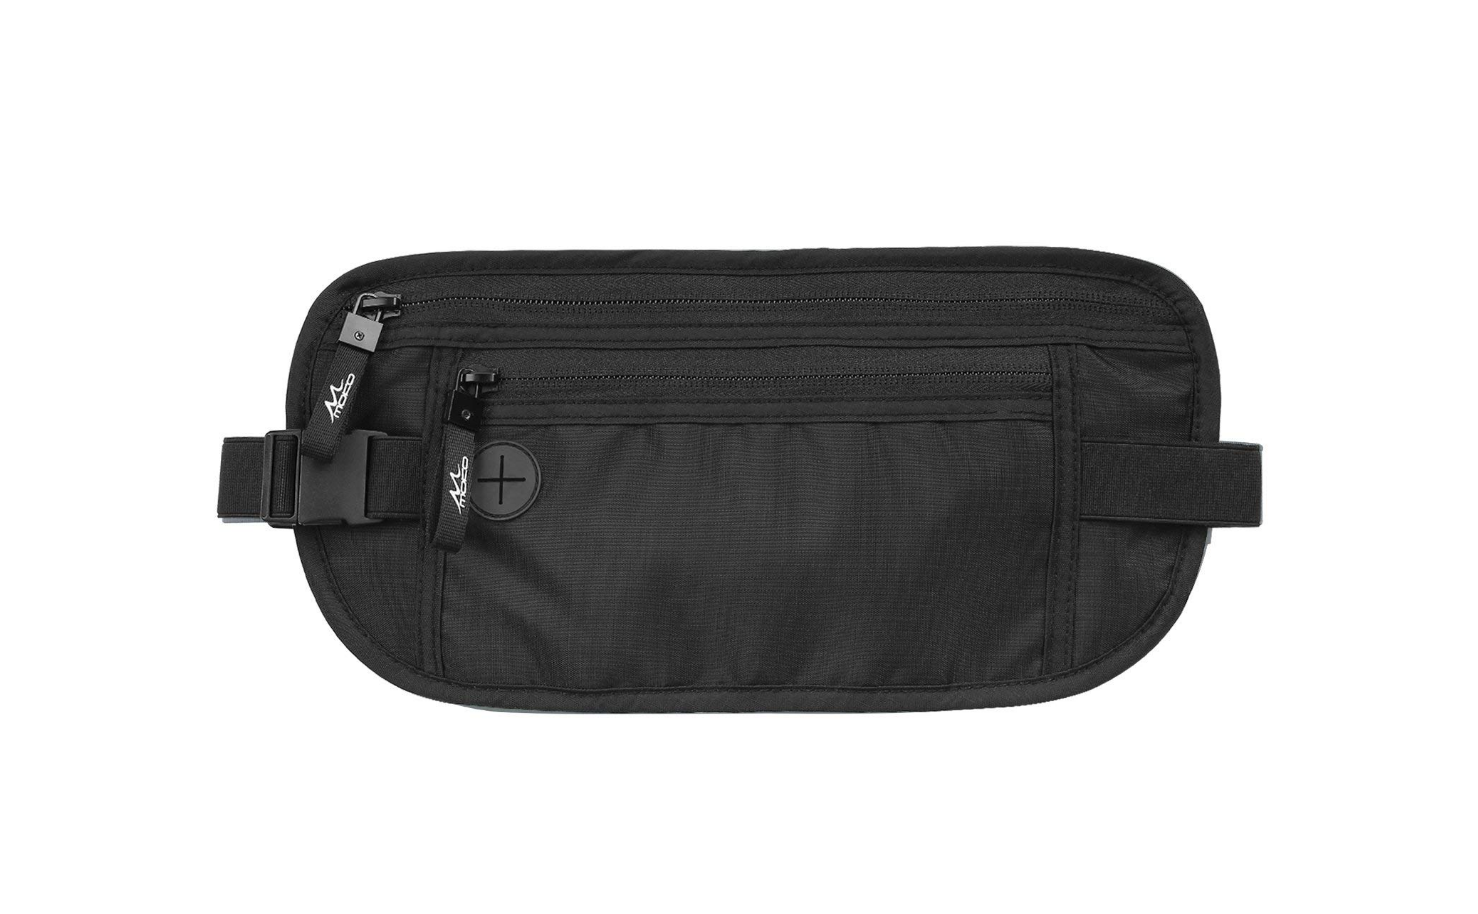 MoKo RFID Travel Belt